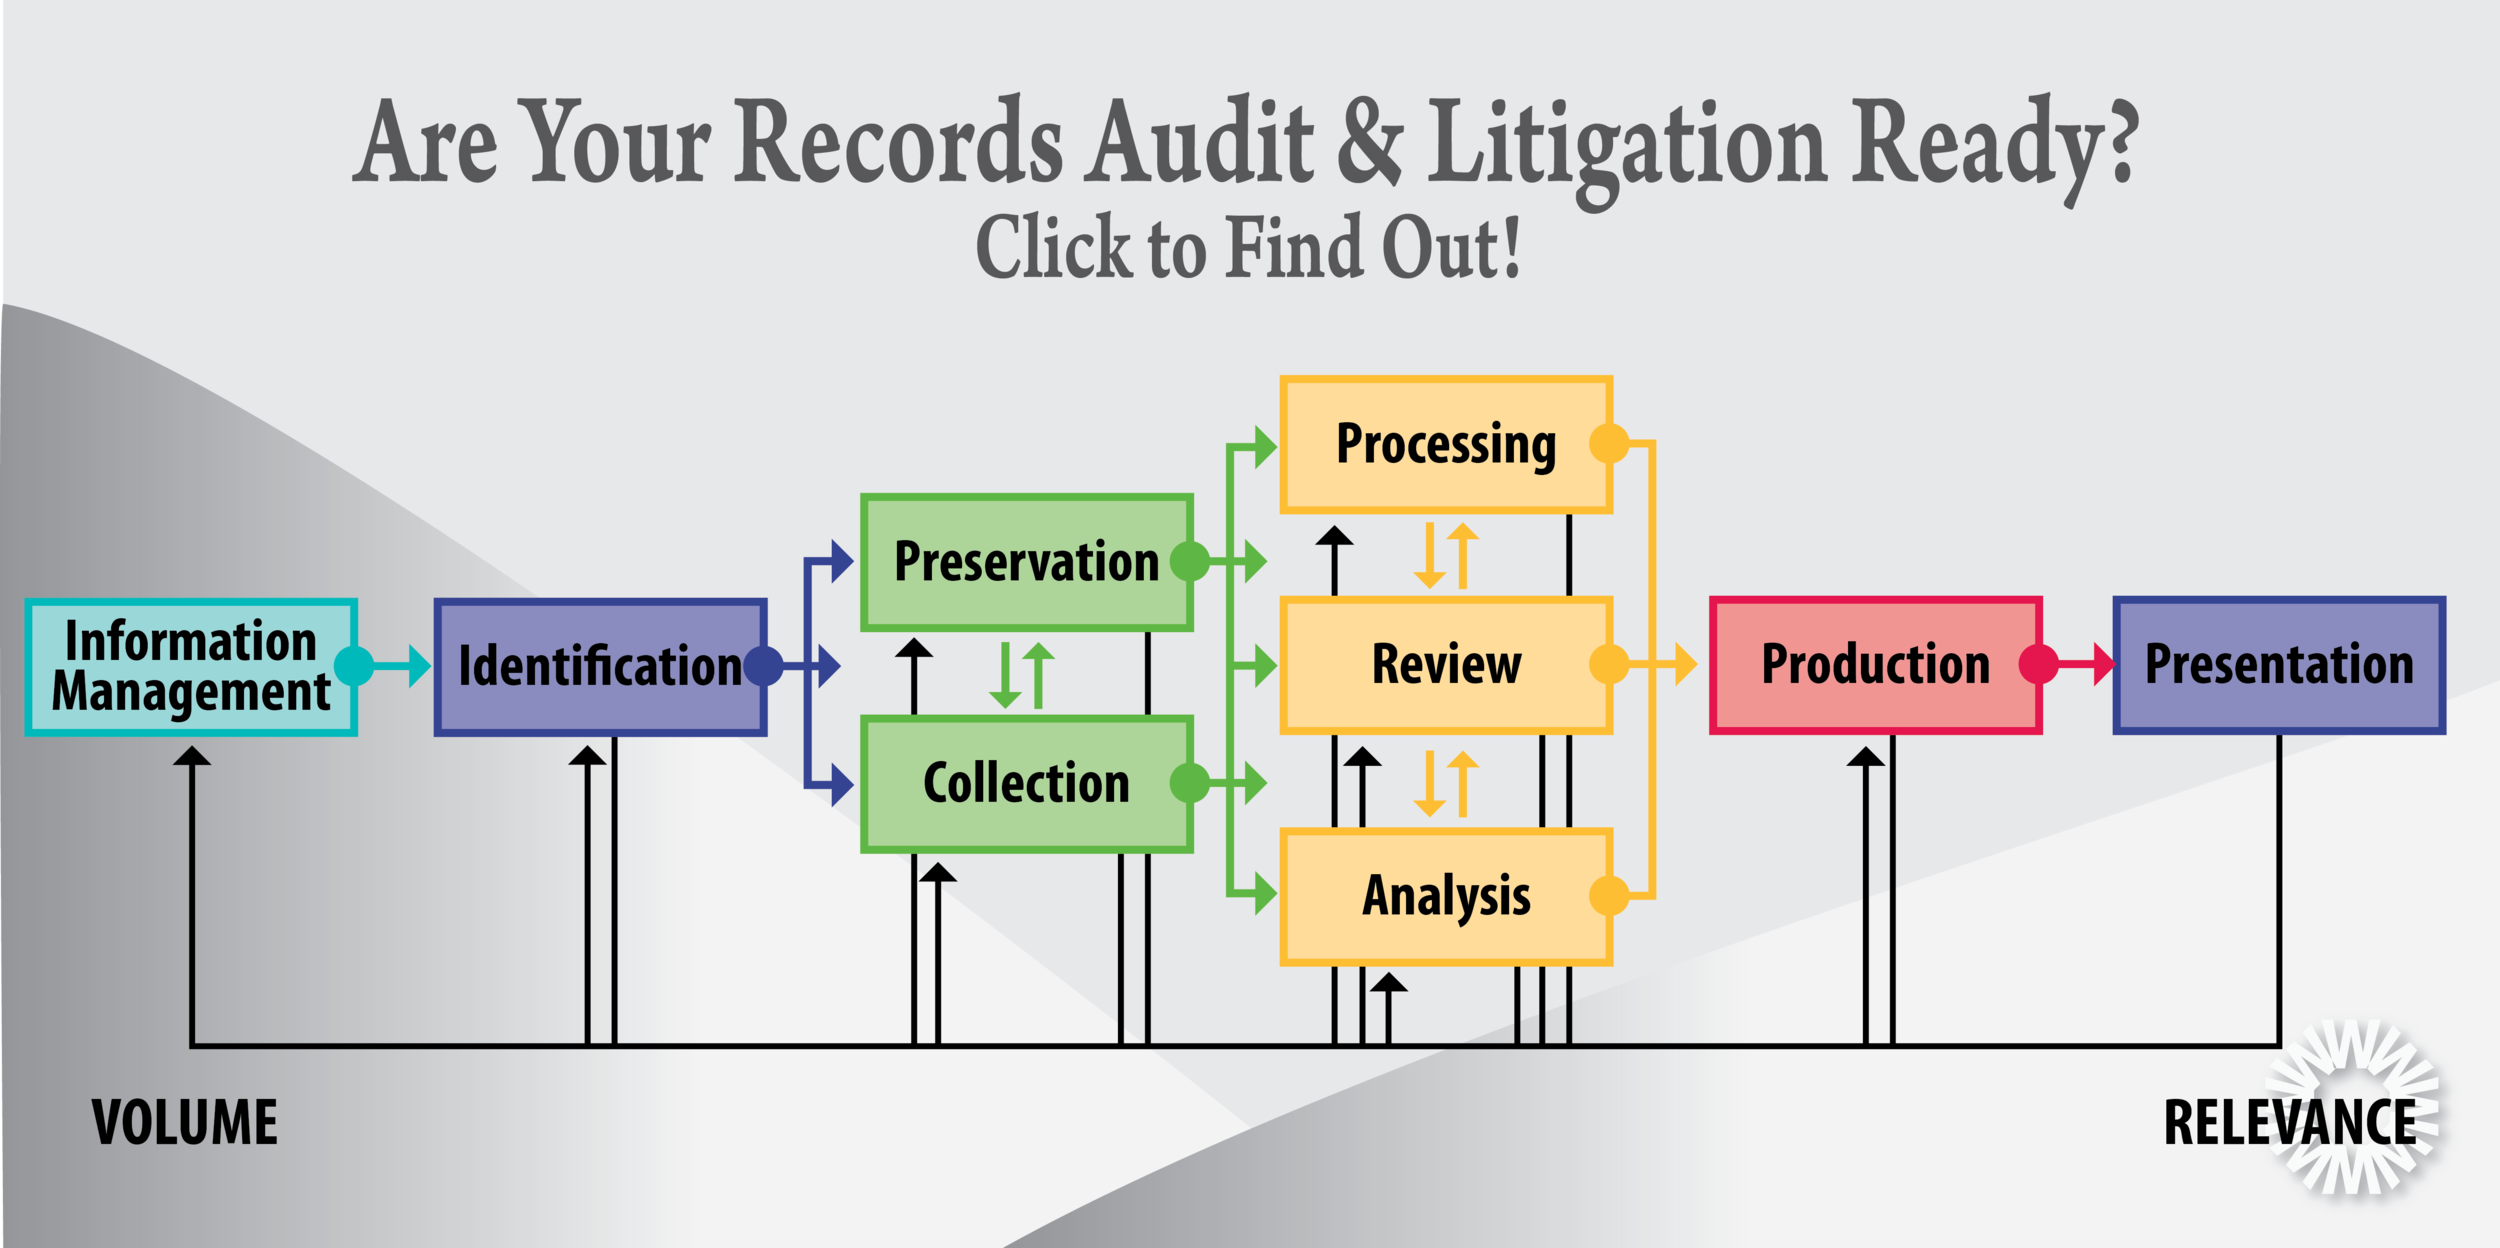 litigationchart-homepage-gallery-3-150.png